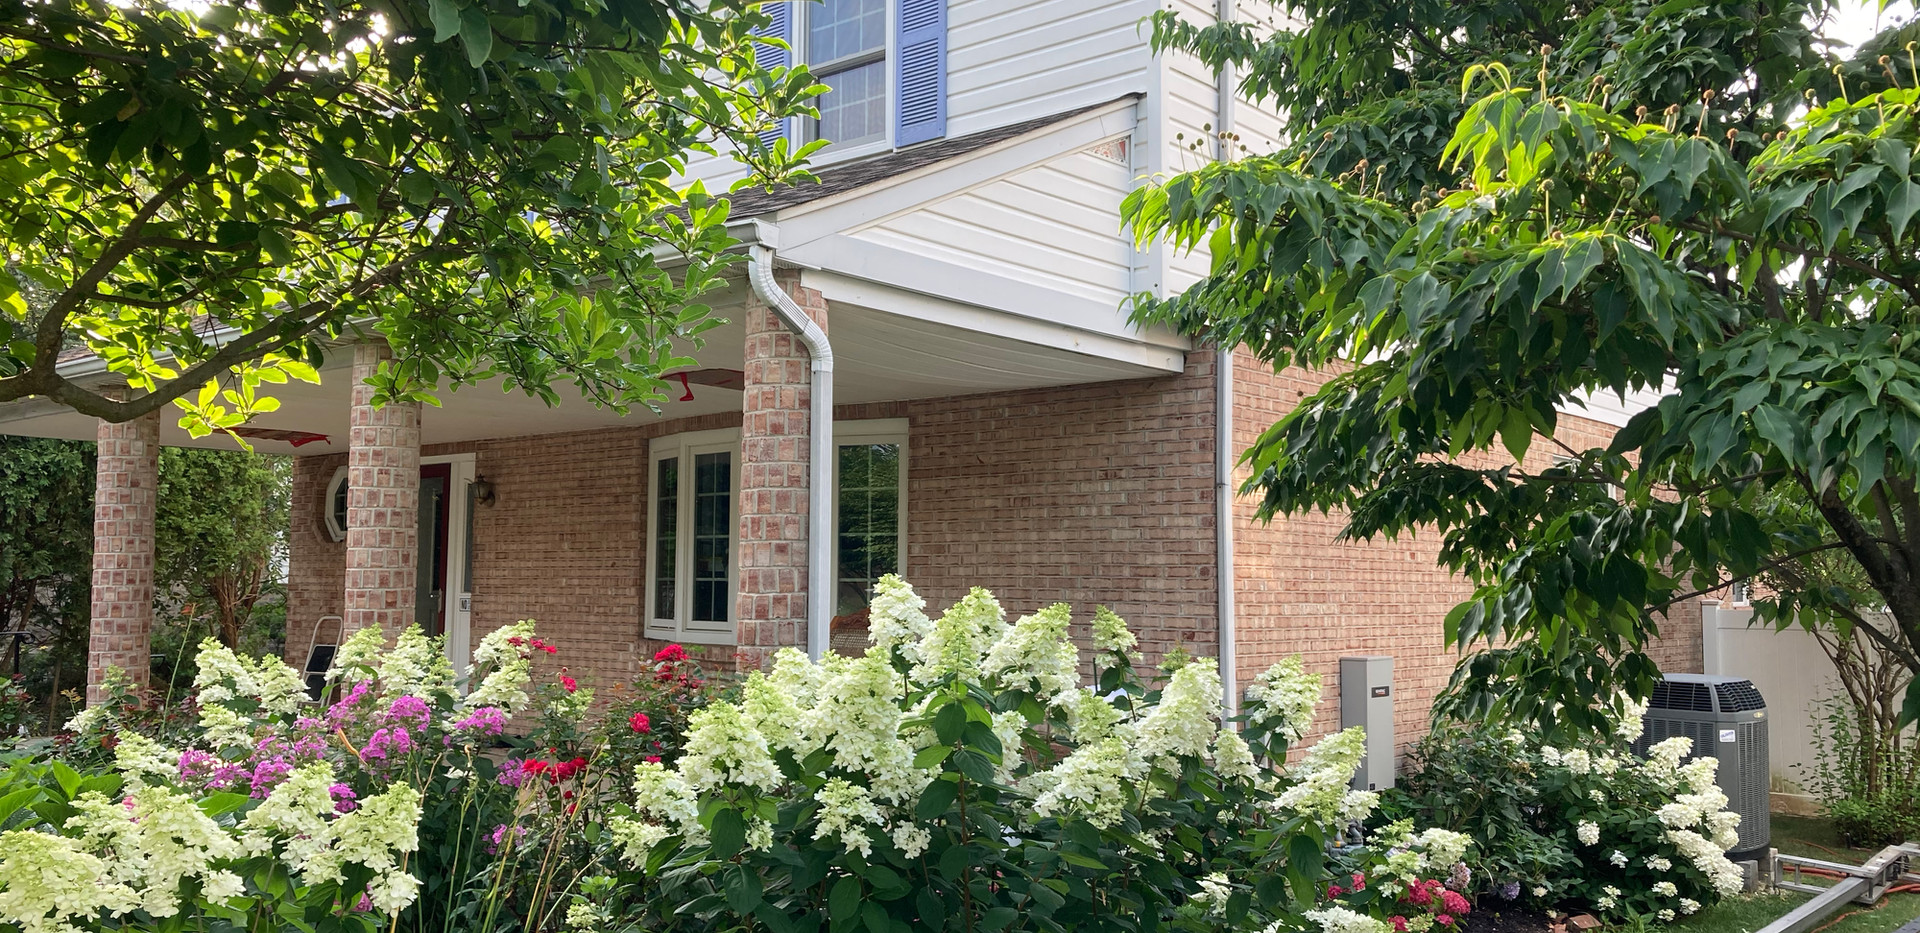 Ridley Park - New vinyl siding, gutters, and shutters.